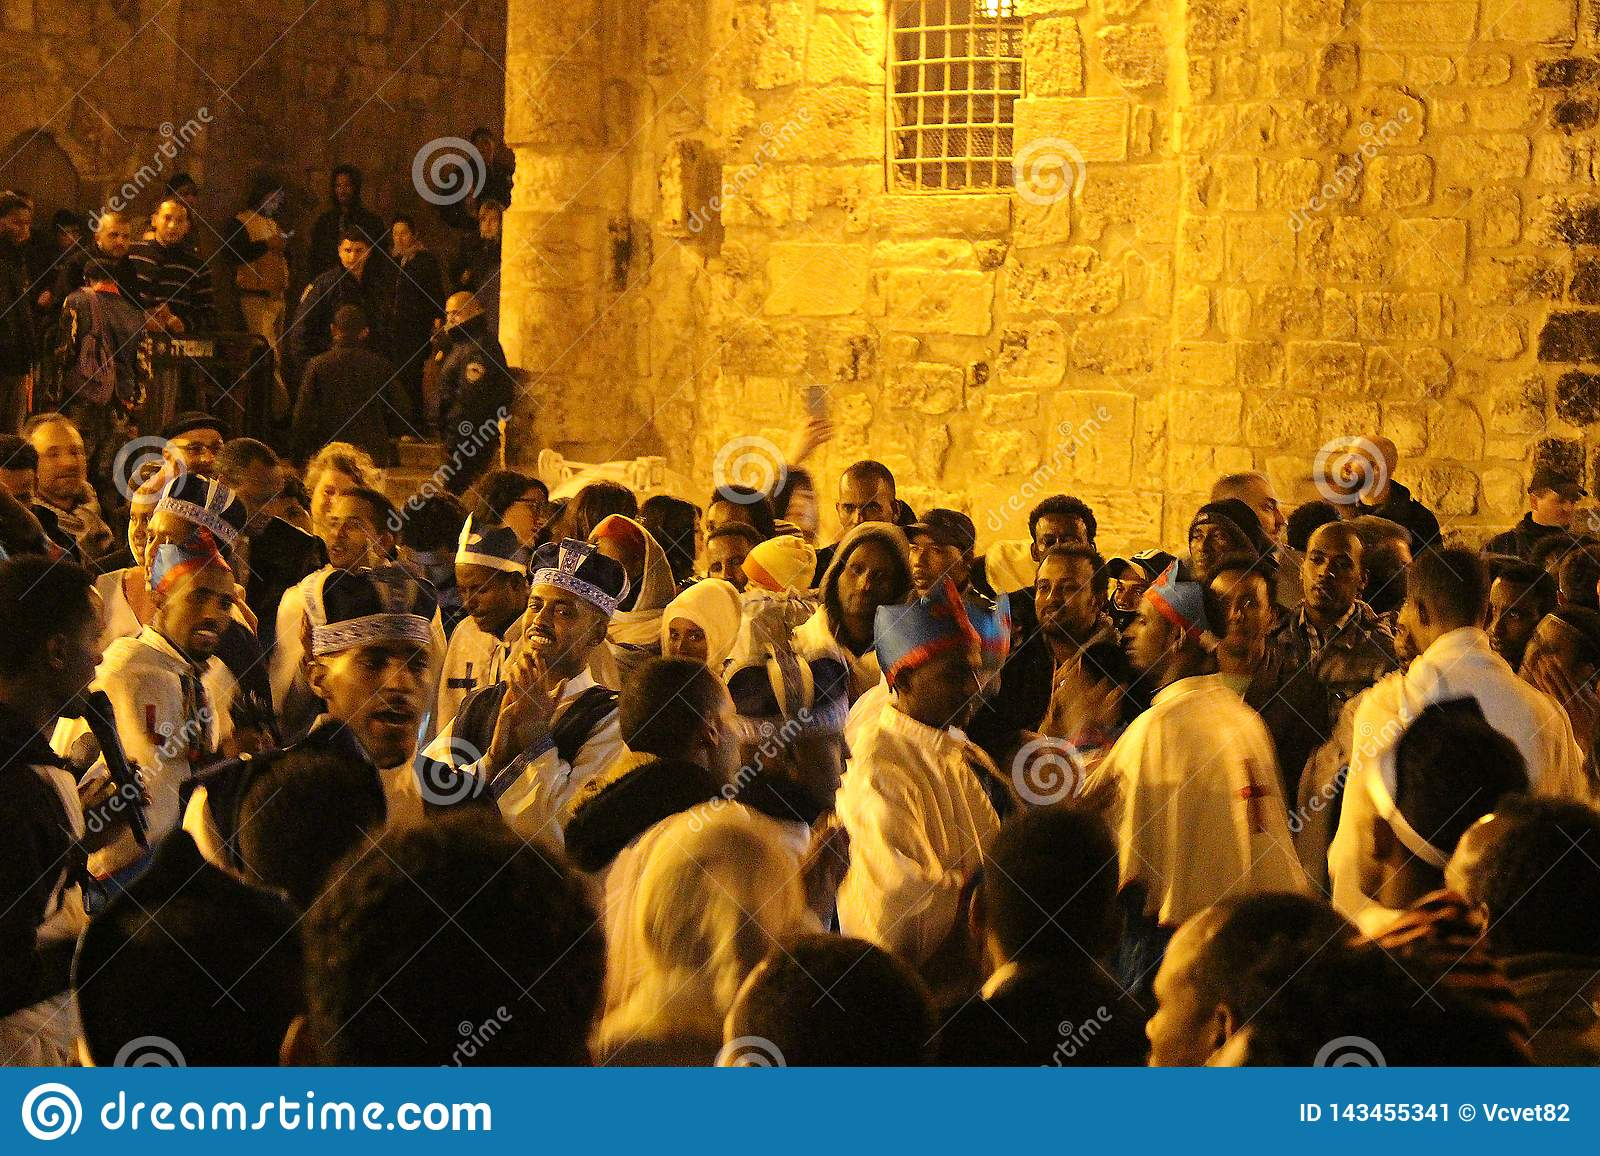 Ethiopian priests and monks singing and praying in Atrium in The Church of the Holy Sepulchre